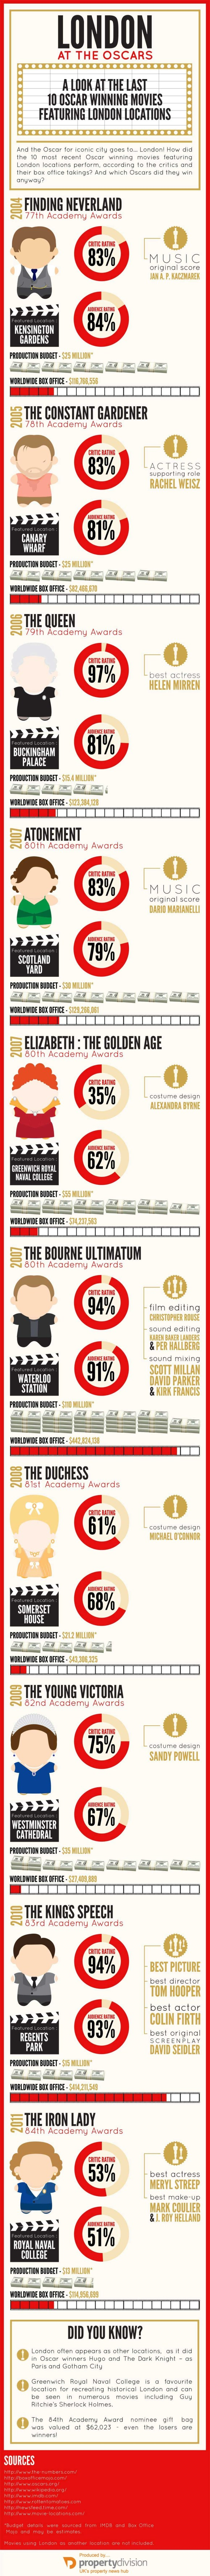 London at the Oscars - Infographic